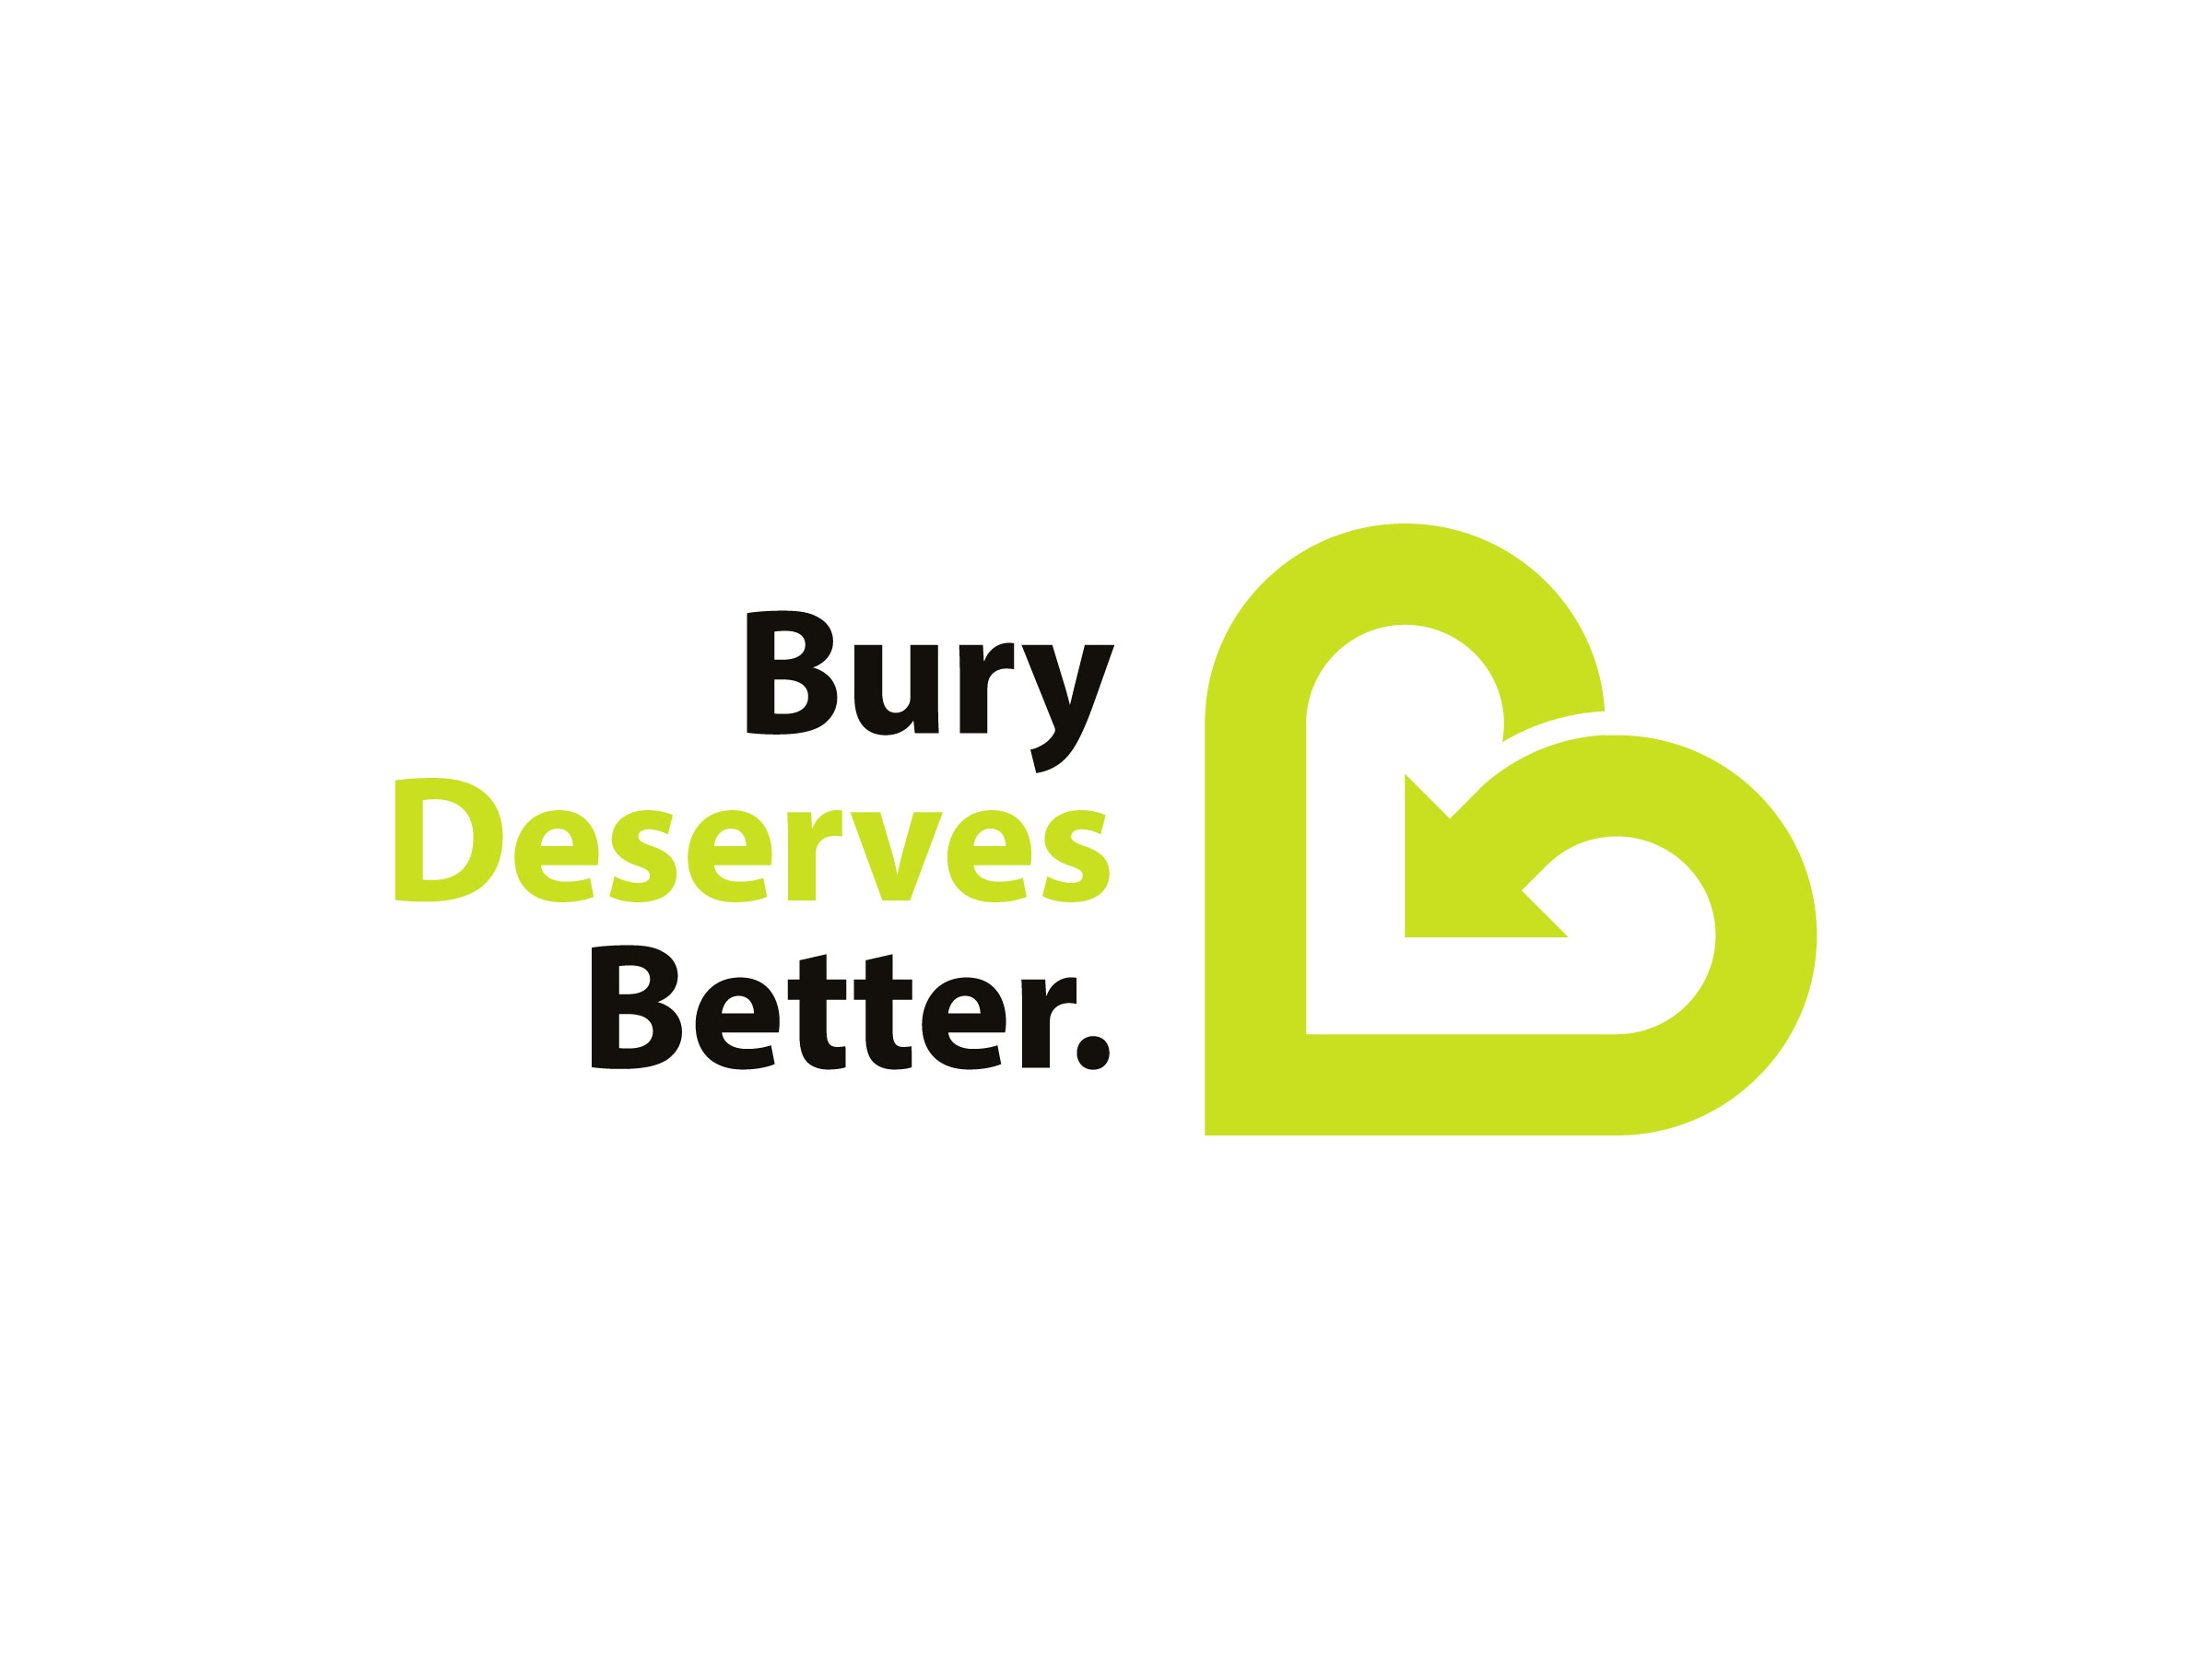 Bury Deserves Better logo